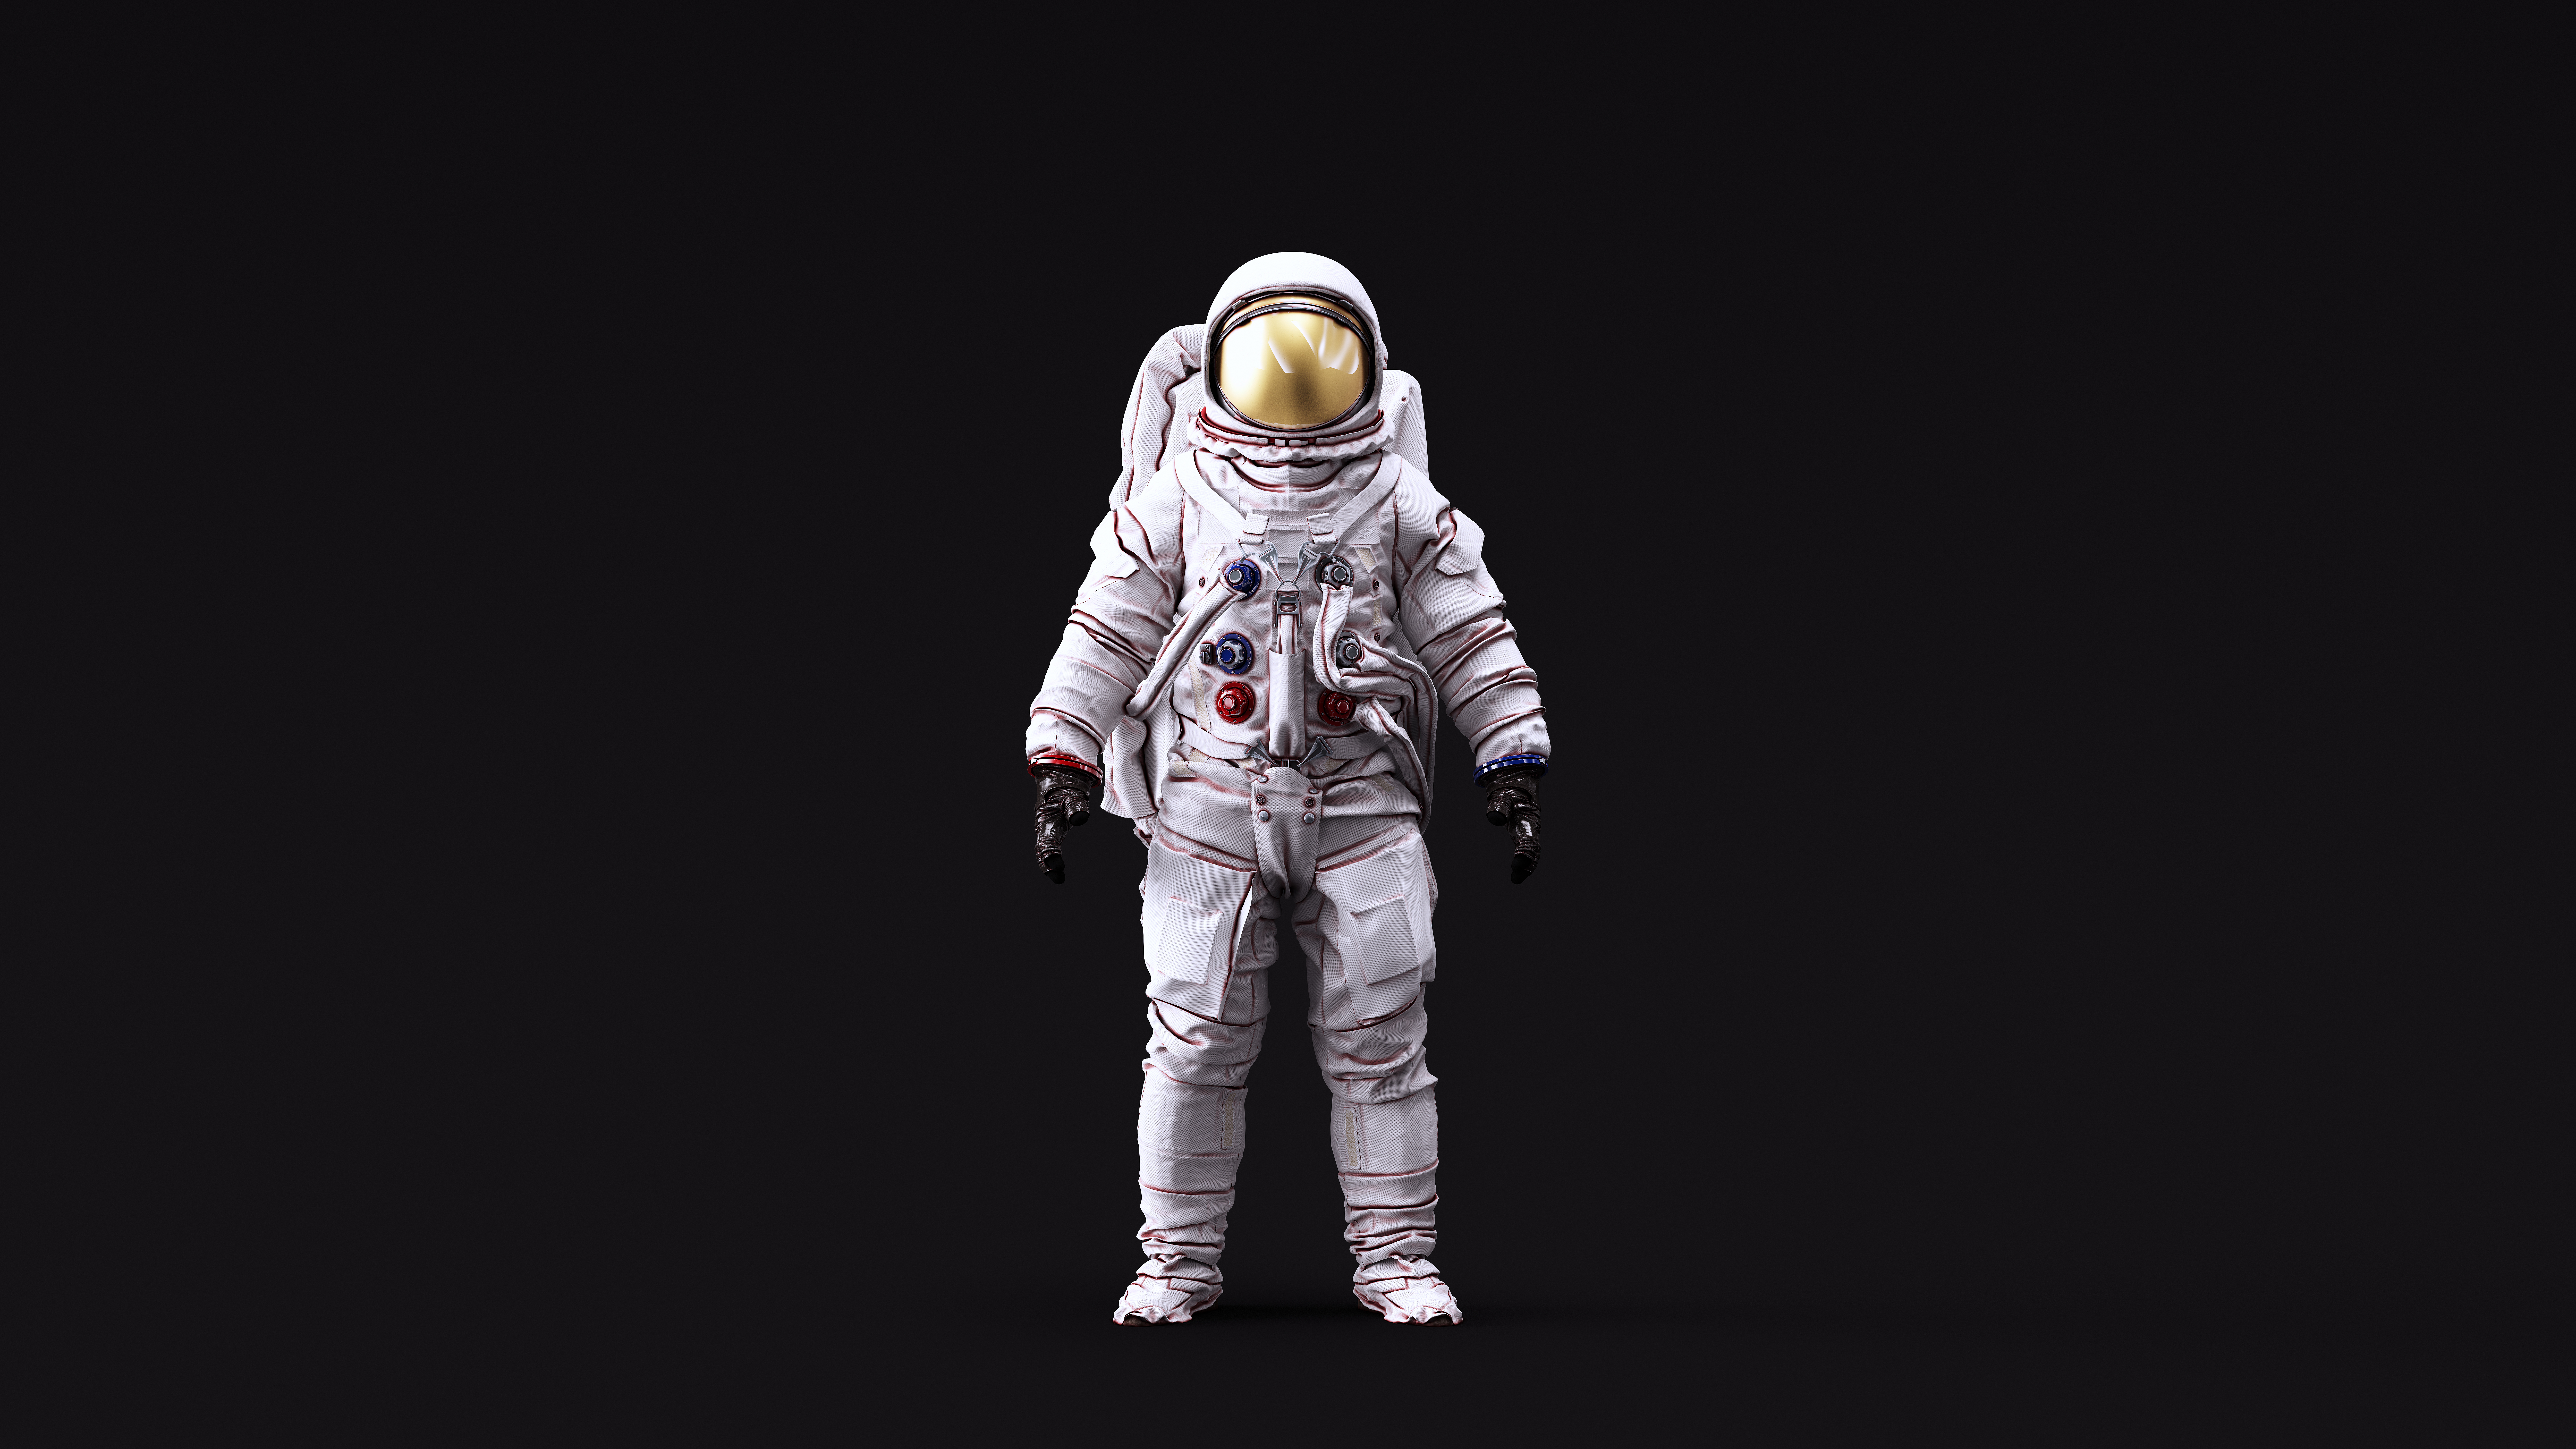 Attending A Concert May Require A Spacesuit. For Real.